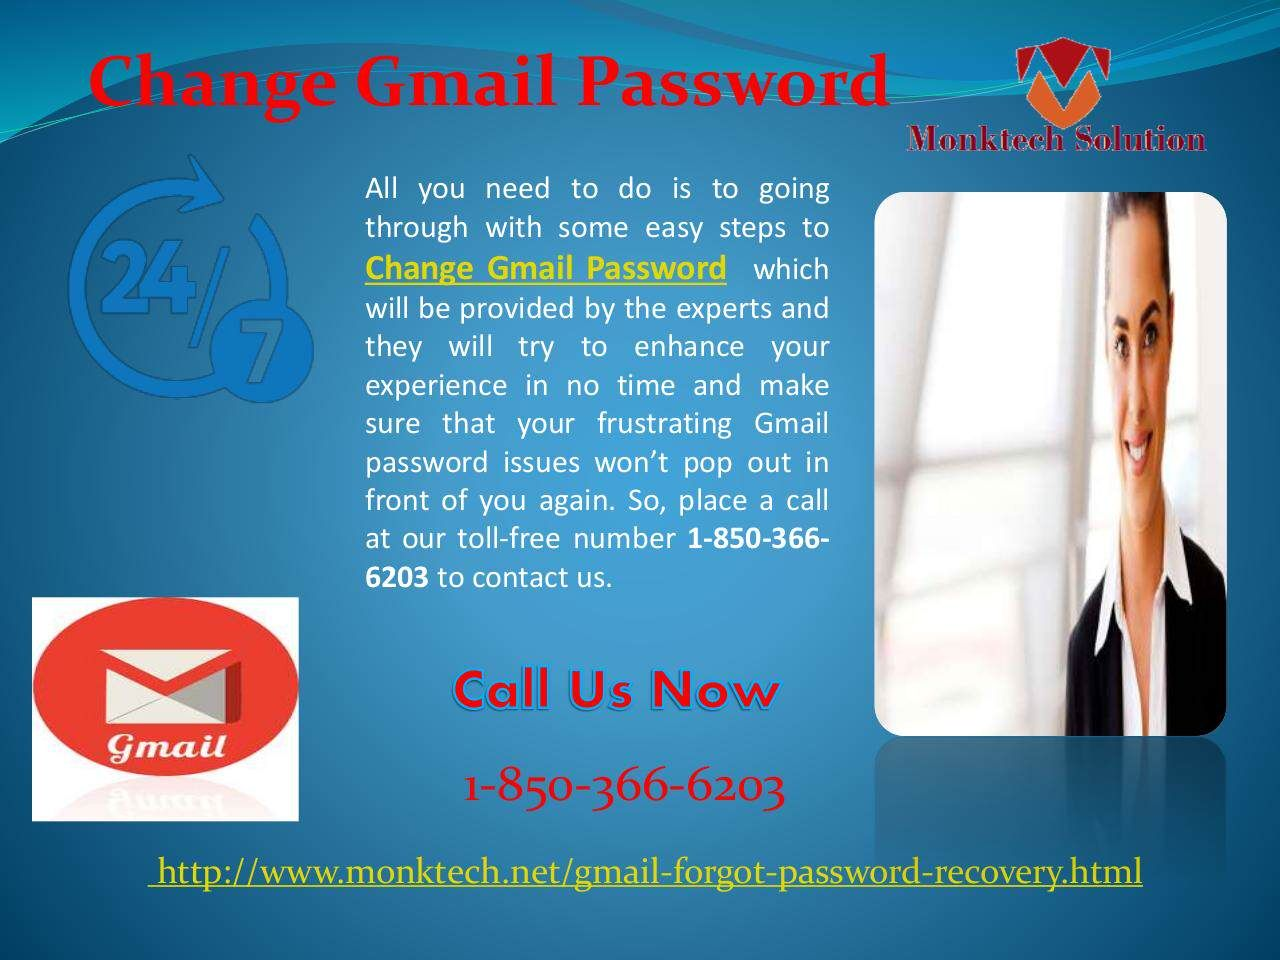 Is there any way to Change Gmail Password 1-850-366-6203 ? Yes, our experts are the way for you and they will tell you how to Change Gmail Password in no time because they have been solving these kinds of issues for many years and that's why our customers believe in our work without any doubts. So, roll your fingers on your Smartphone keypad and give us a ring at 1-850-366-6203. http://www.monktech.net/gmail-forgot-password-recovery.html